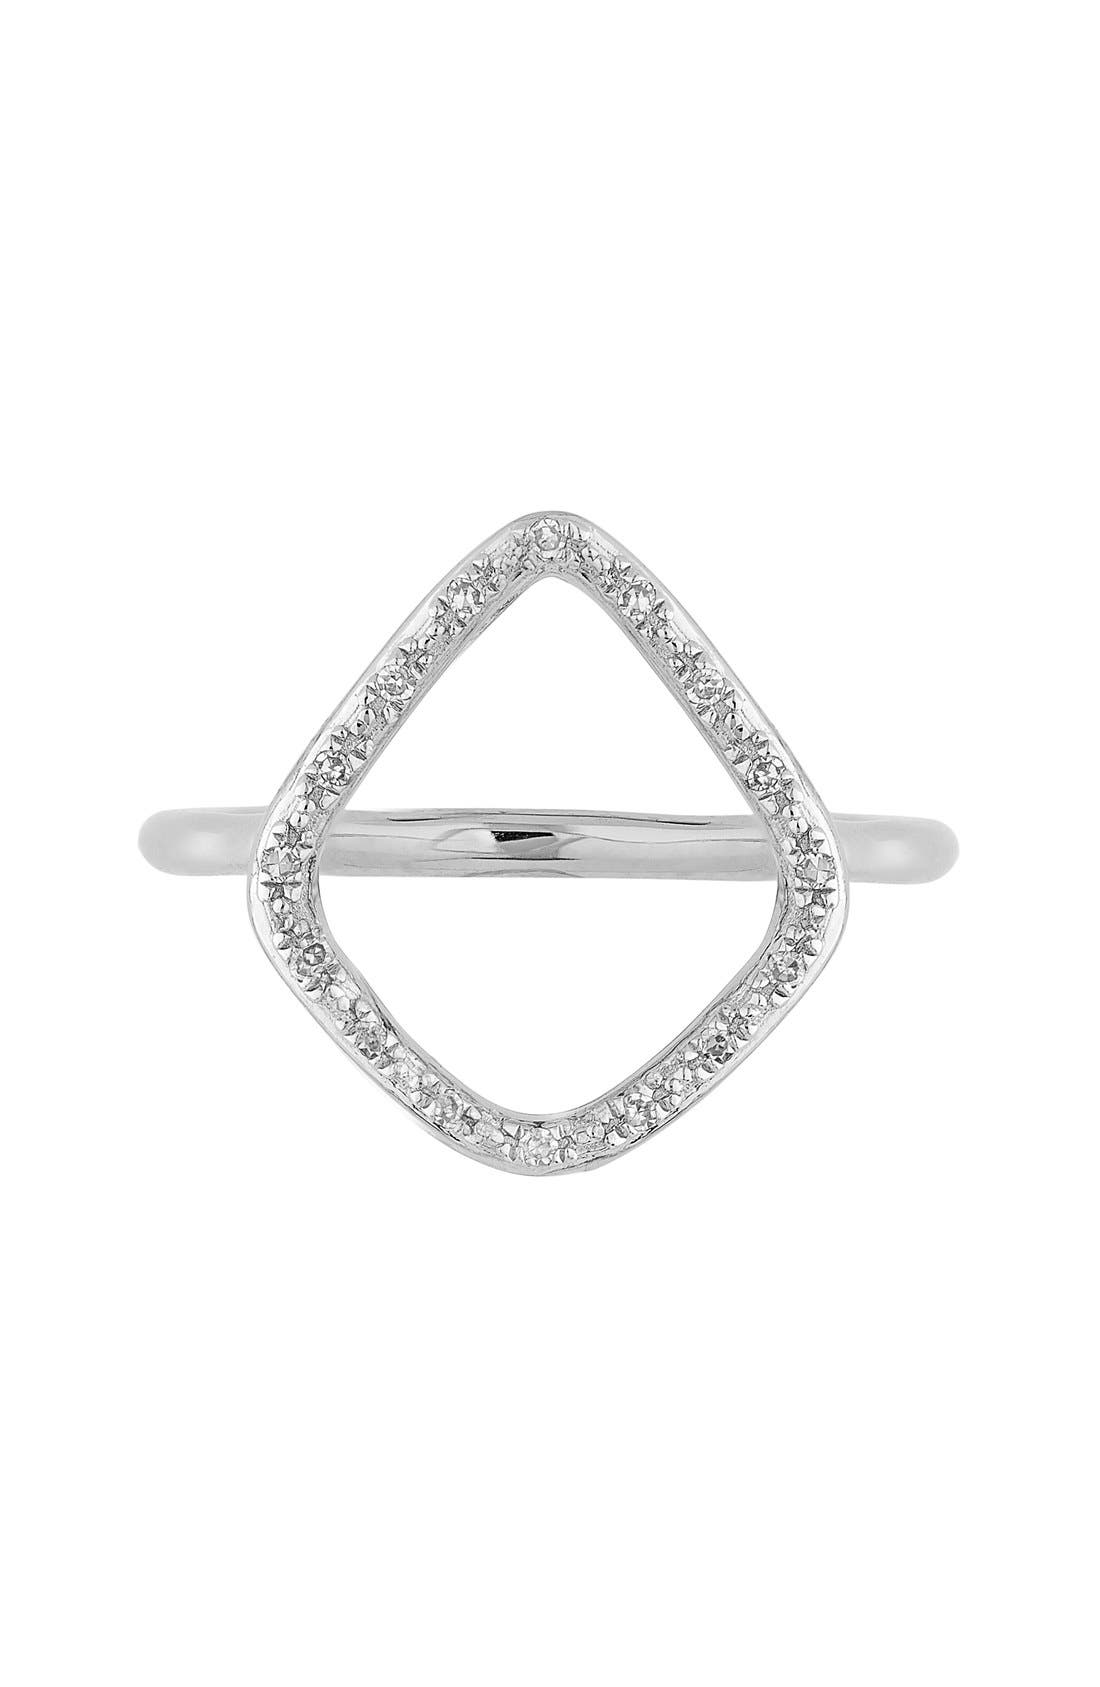 'Riva' Diamond Hoop Ring,                             Main thumbnail 1, color,                             SILVER